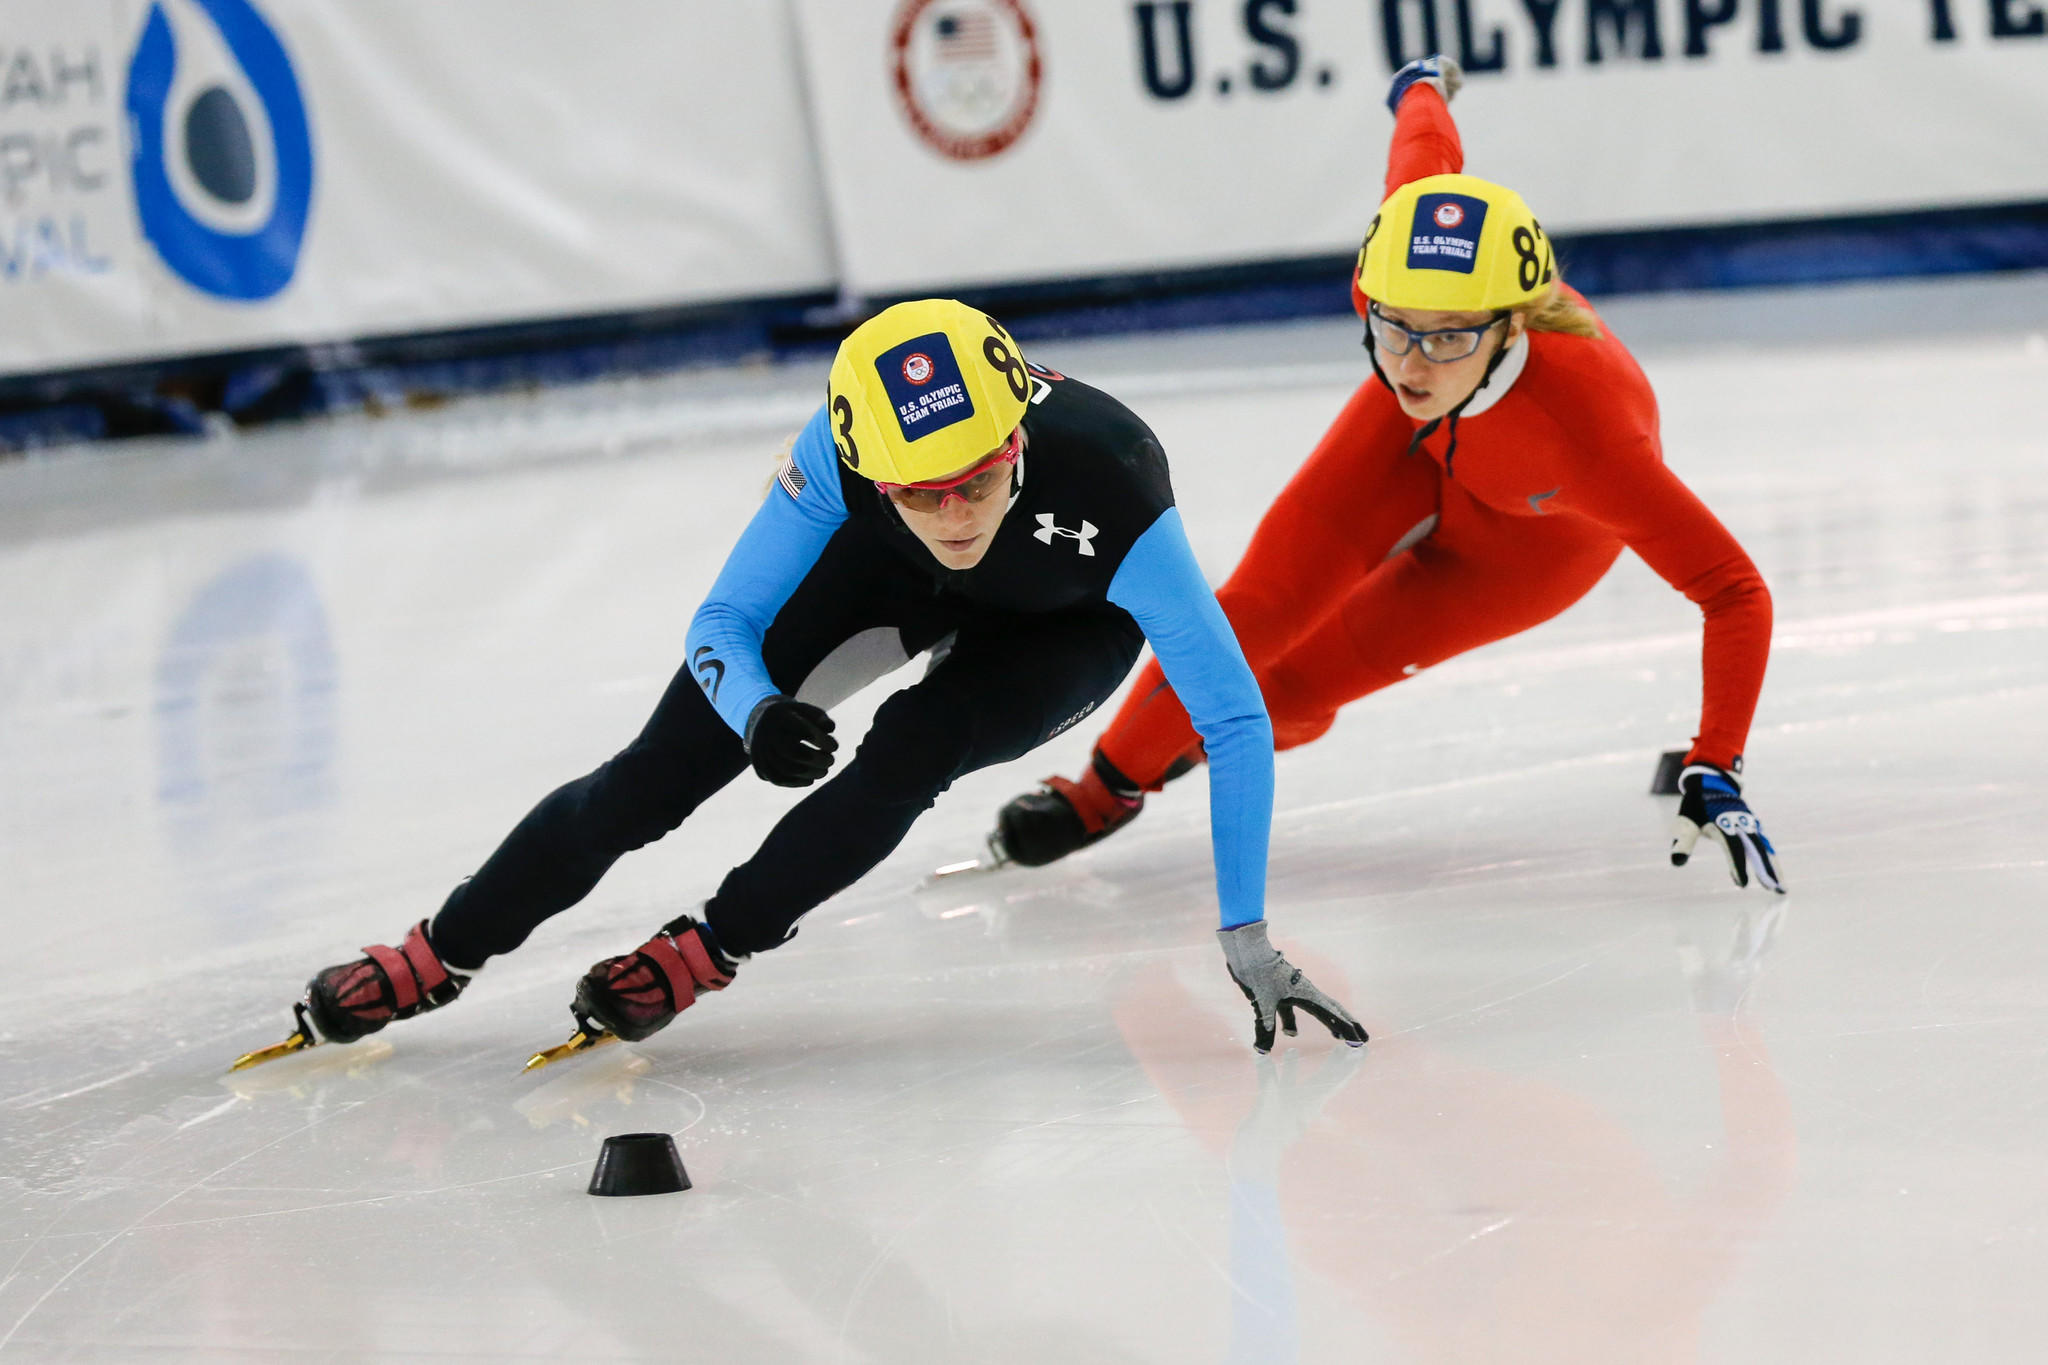 Emily Scott (left) and Brittany Salmon (right) compete in the 500m of the U.S. Olympic short track speedskating trials at Utah Olympic Oval.